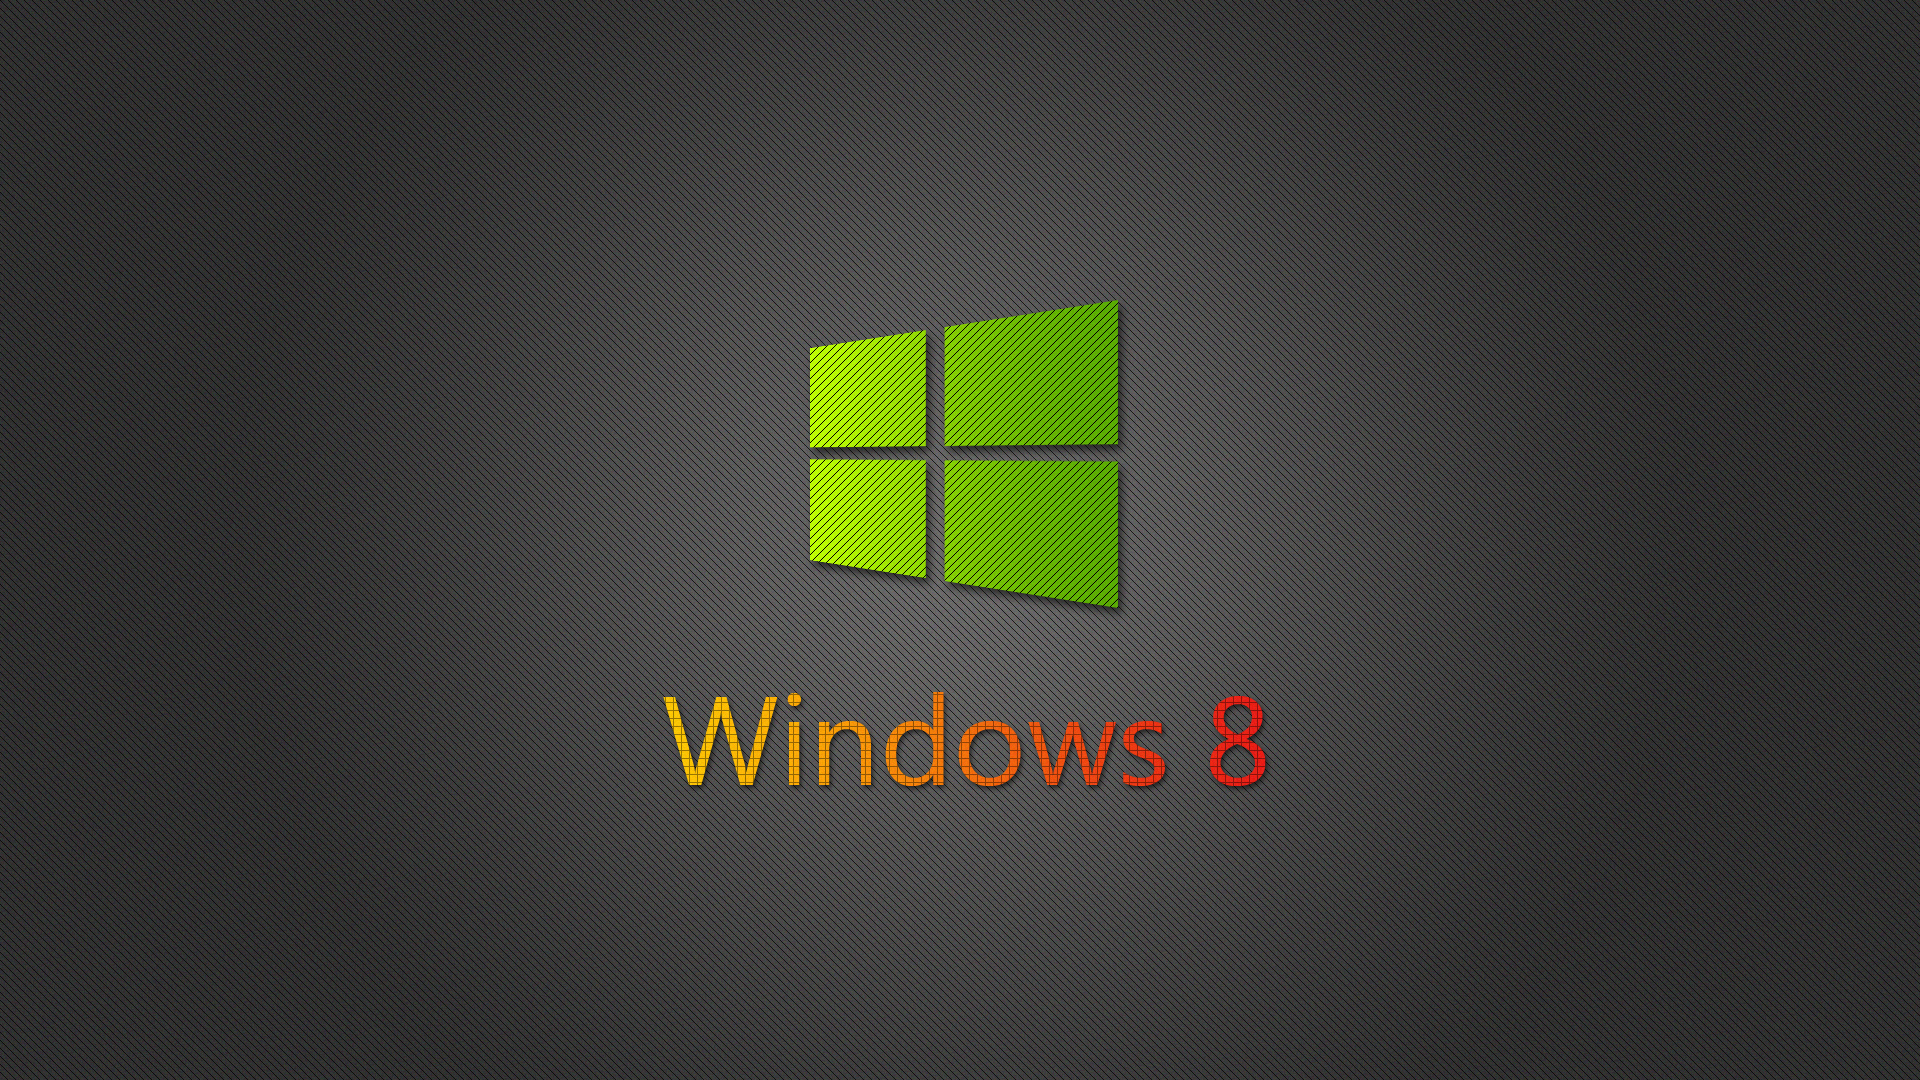 windows 8 wallpaper hd 1080p free download - sf wallpaper